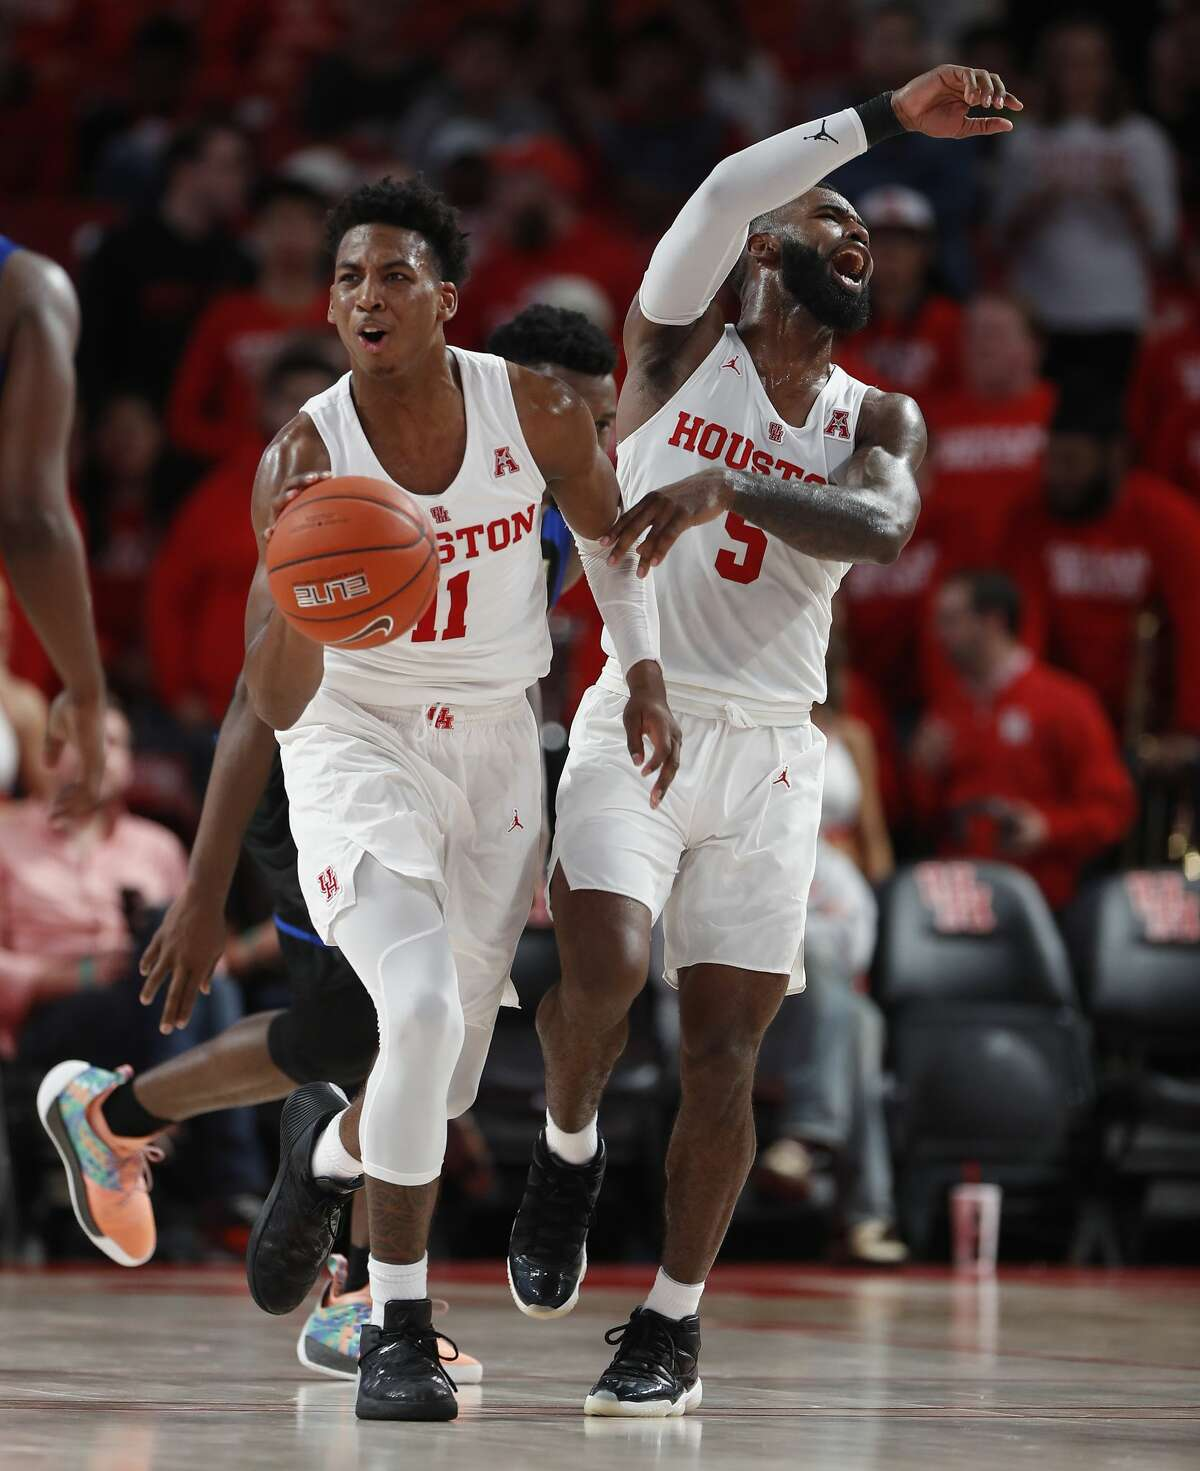 Houston Cougars guards Nate Hinton (11) and Corey Davis Jr. (5) react after a foul was called during the second half of an NCAA Men's basketball game at Feritta Center, Wednesday, Jan. 2, 2019, in Houston.